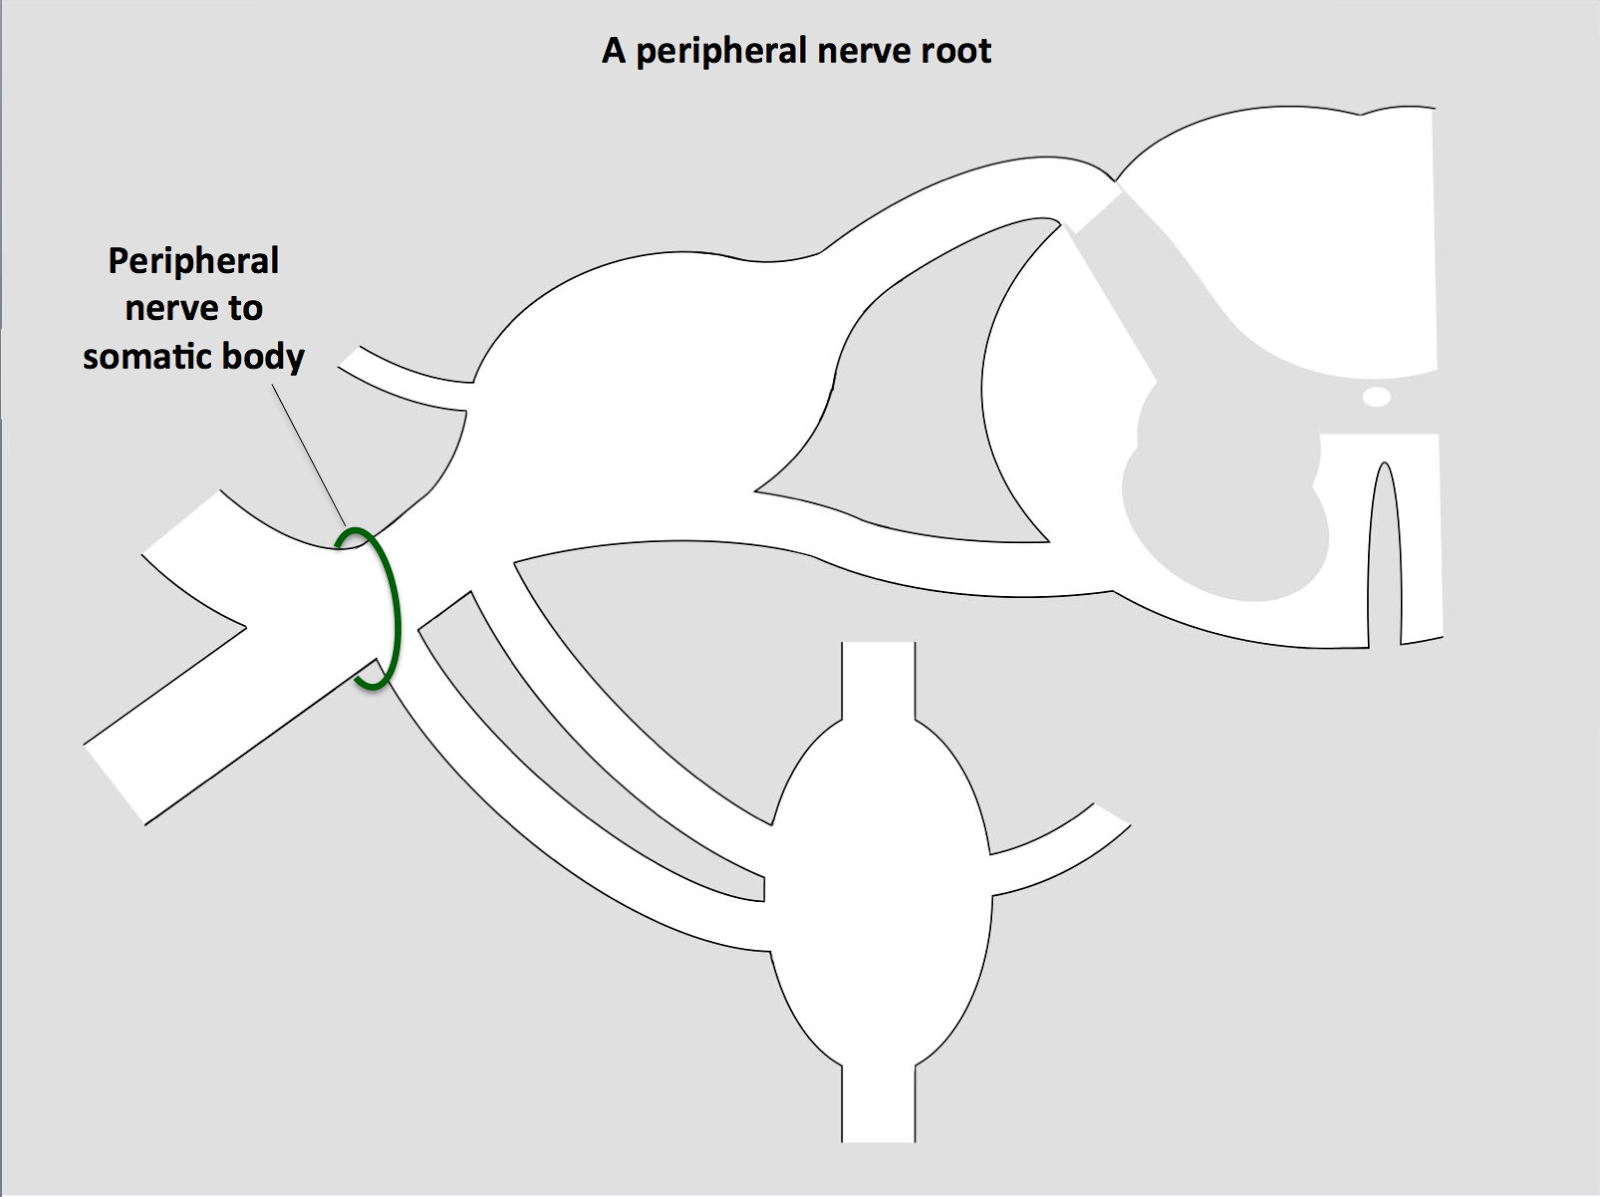 HumanAntiGravitySuit: Anatomy of a peripheral nerve root